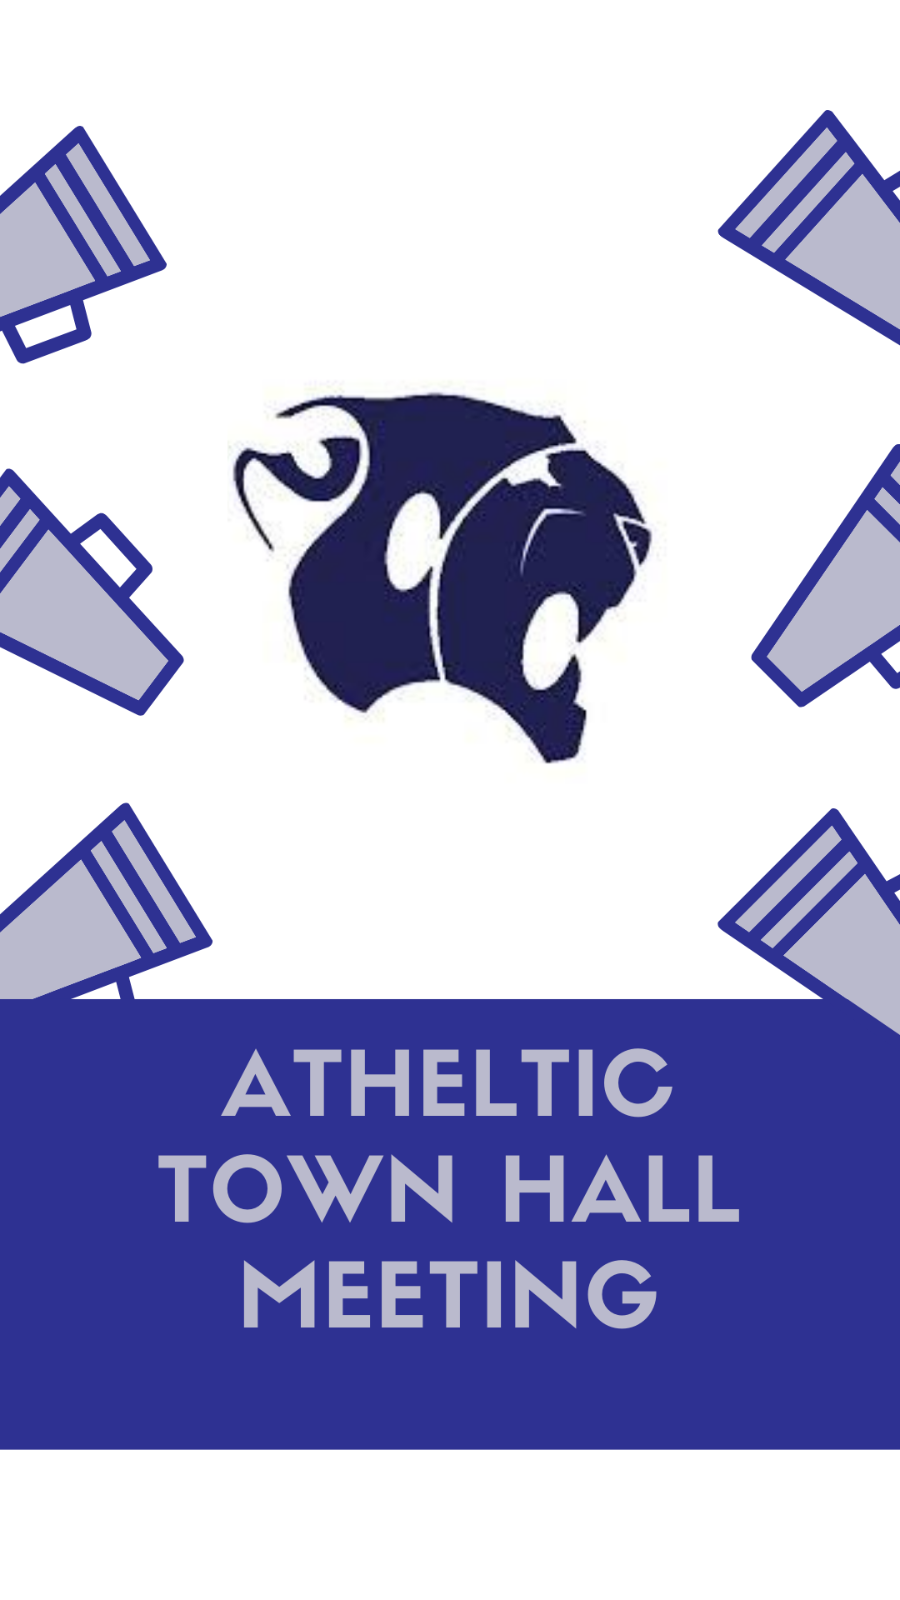 Colleton County Athletic Town Hall Meeting Monday, August 10, 2020 @ 6:00 PM